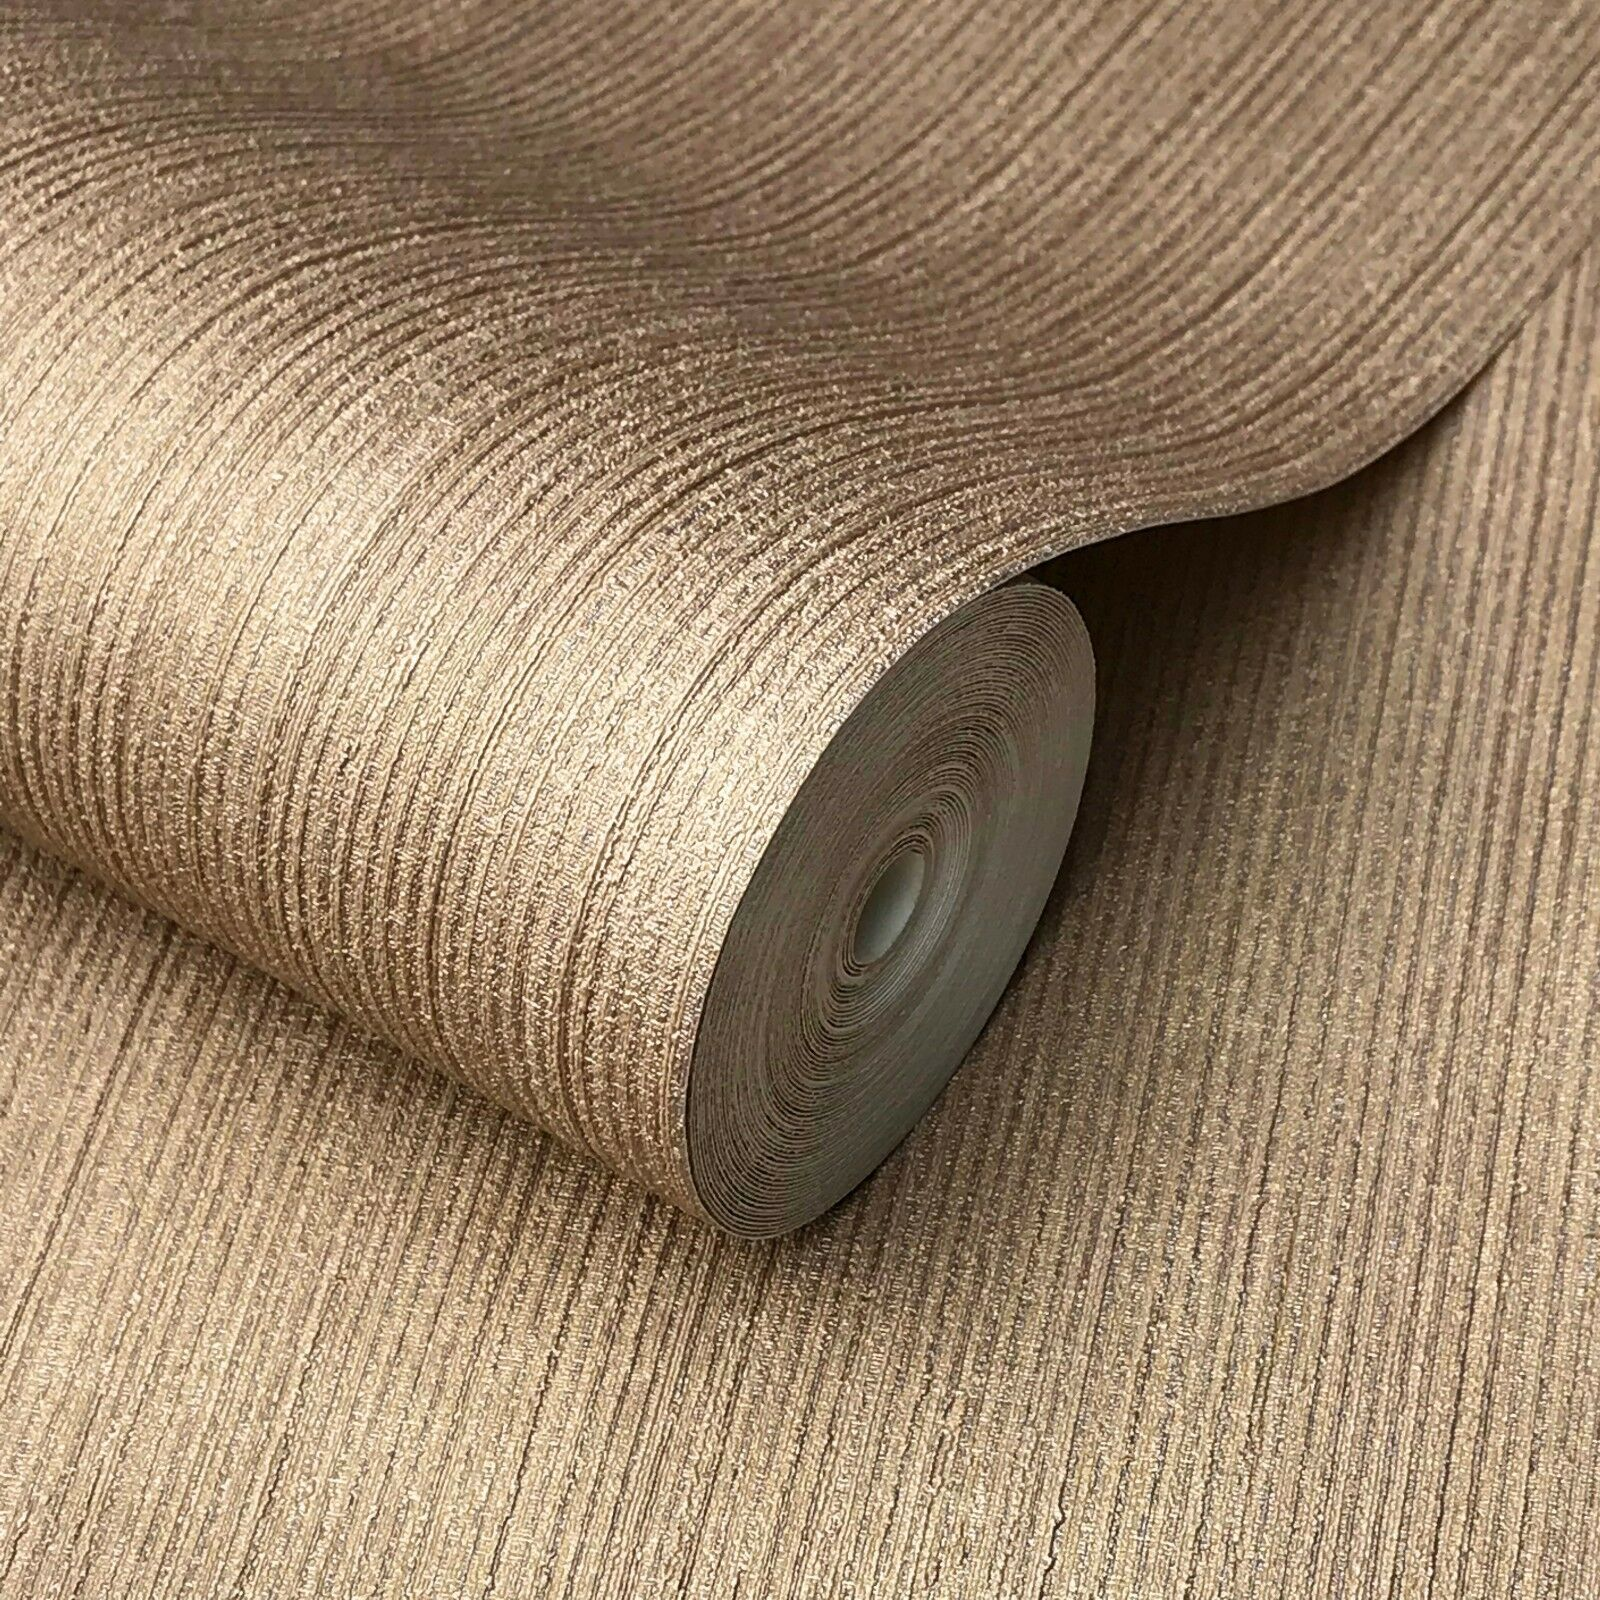 Wallpaper rolls textured lines wall coverings Cocoa gold Copper metallic Plain